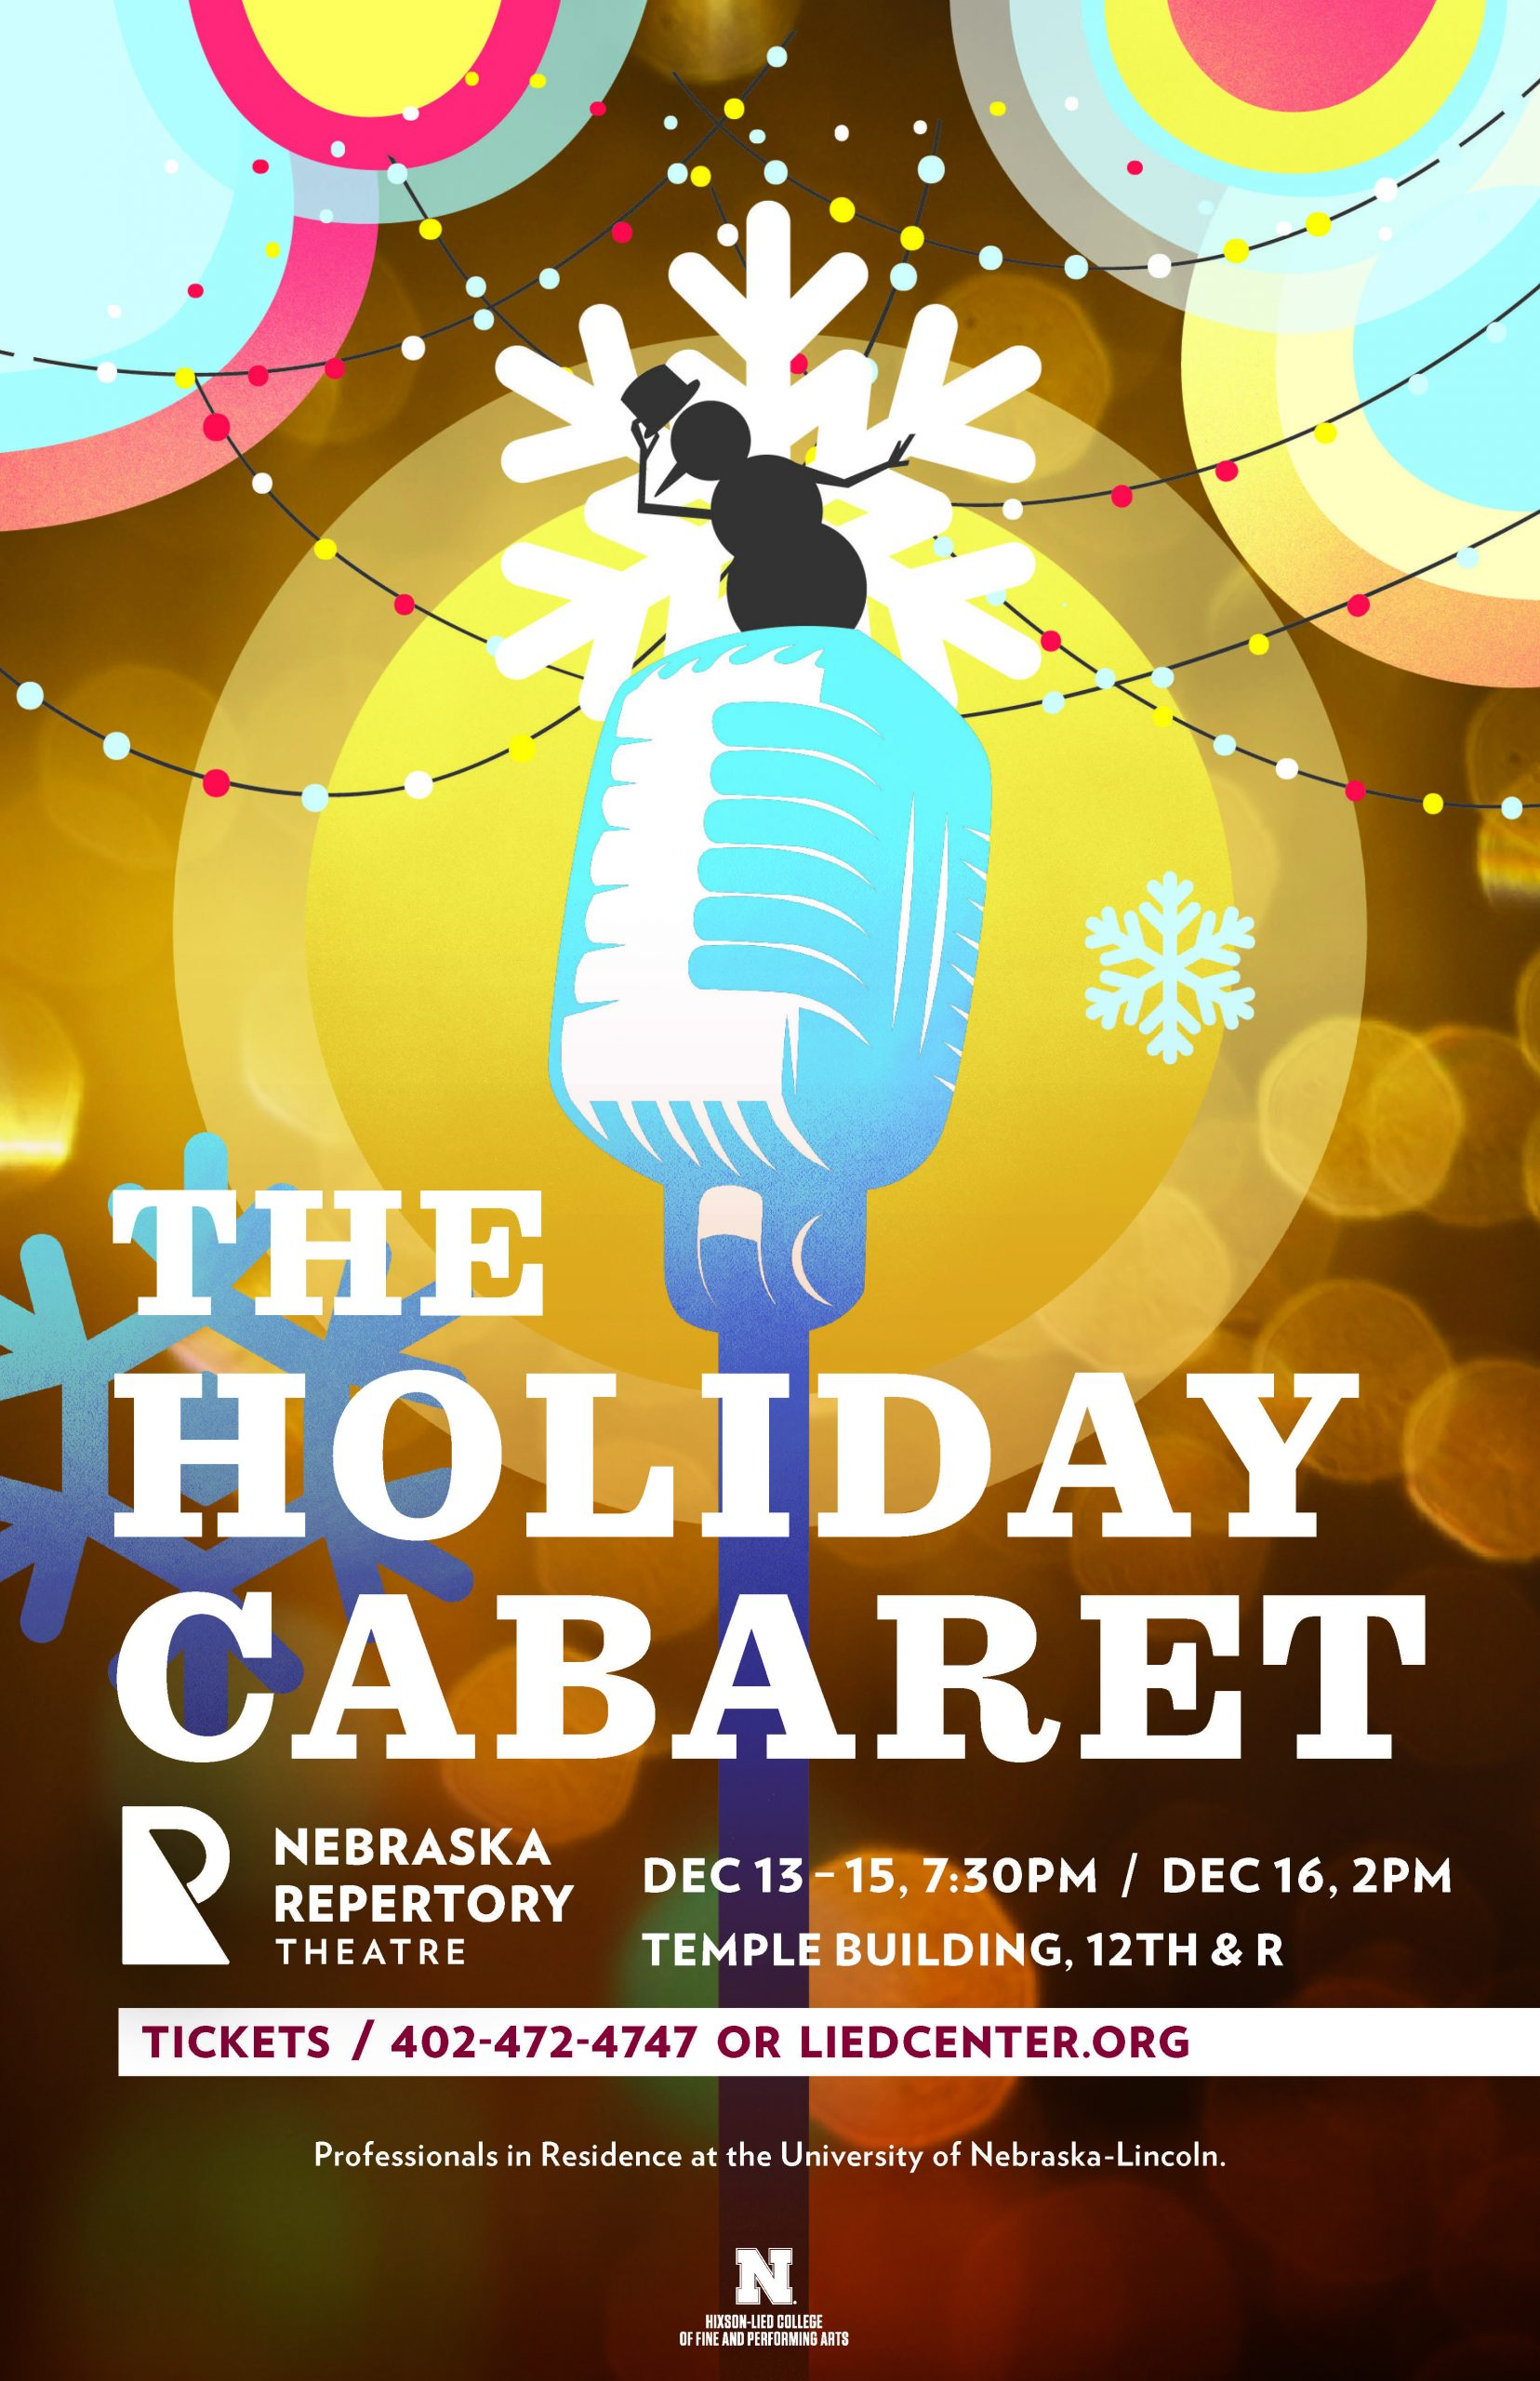 A poster witht he headline 'The Holiday Cabaret' featuring an illustration of a brightly illuminated microphone with a snow man on top tilting a top hat.